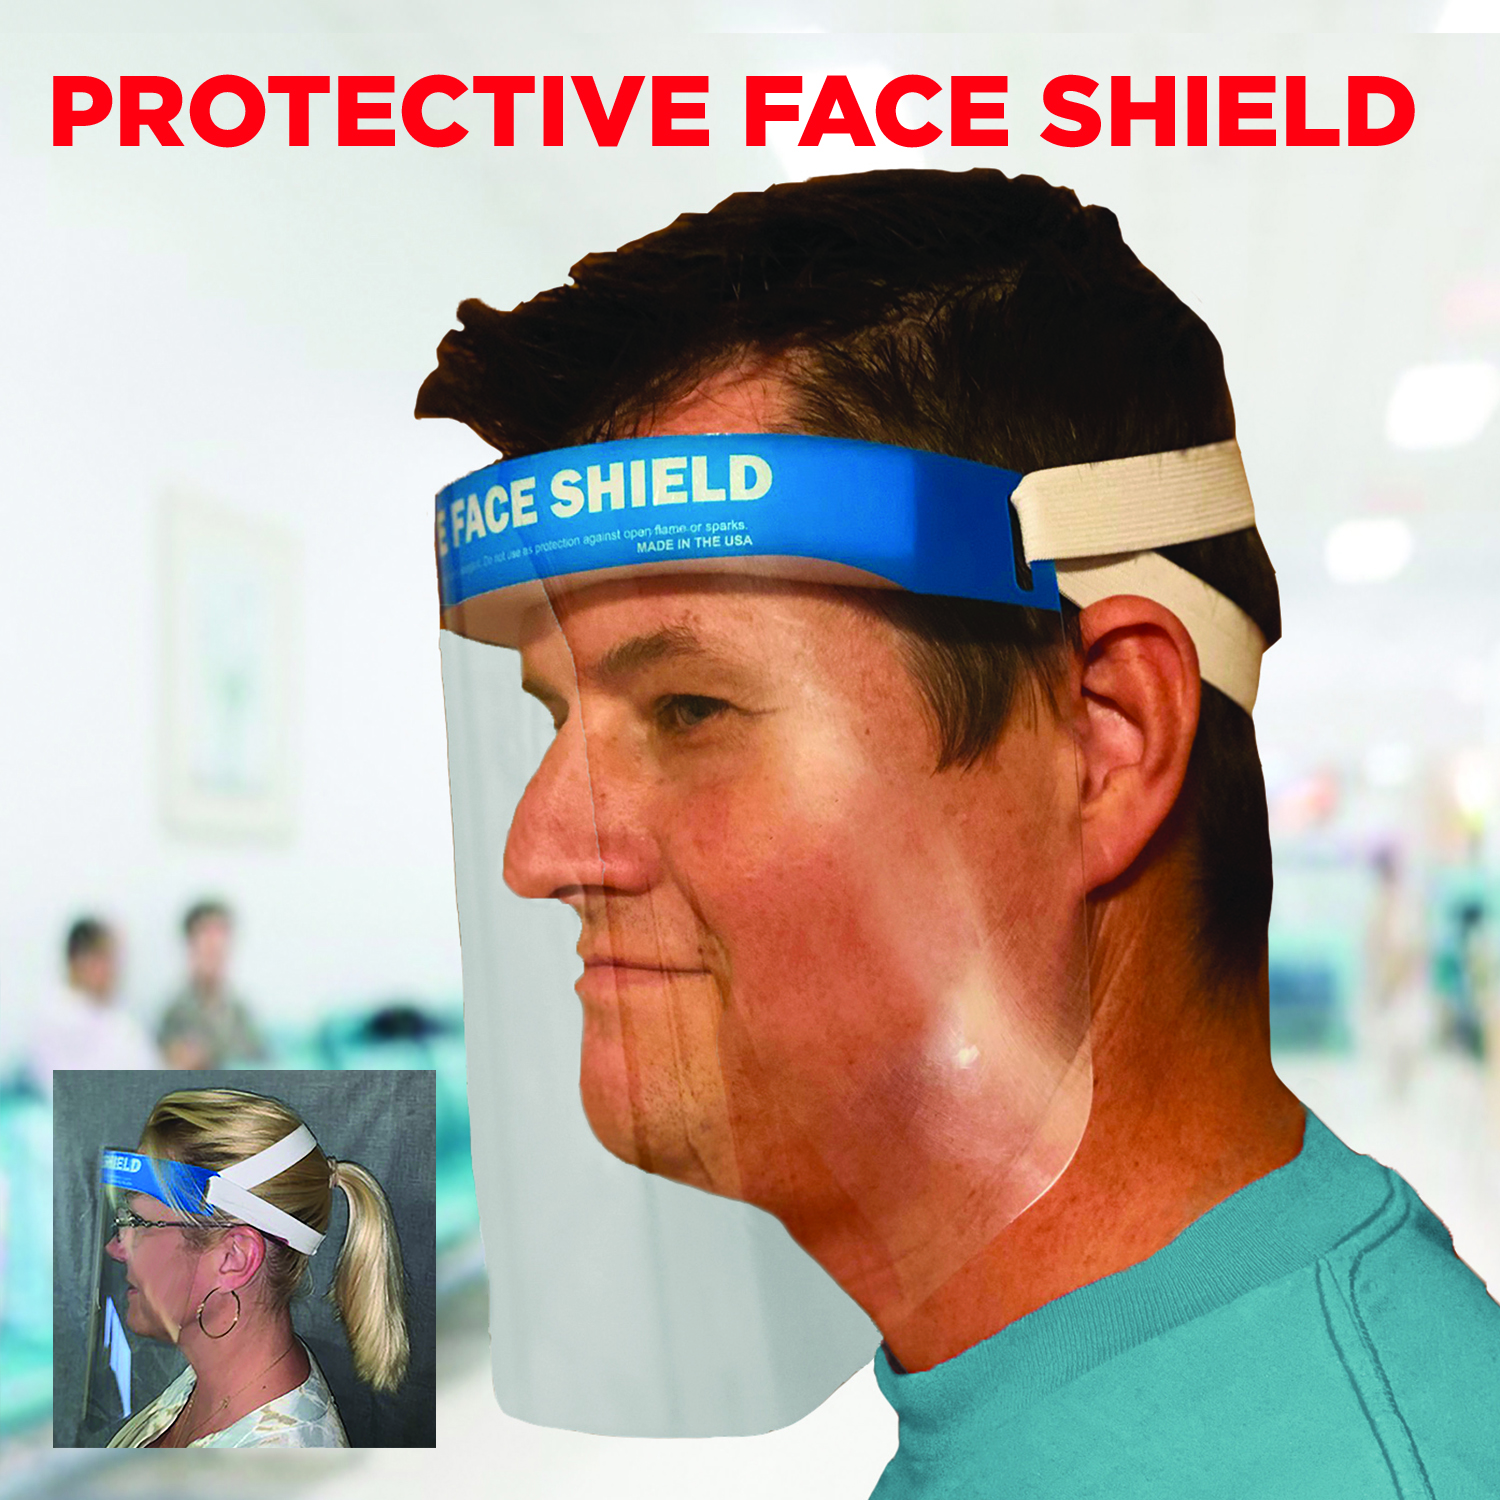 3635 Protective Face Shield Made in USA FDA Embroider It Columbia Missouri PPE Personal Protective Equipment